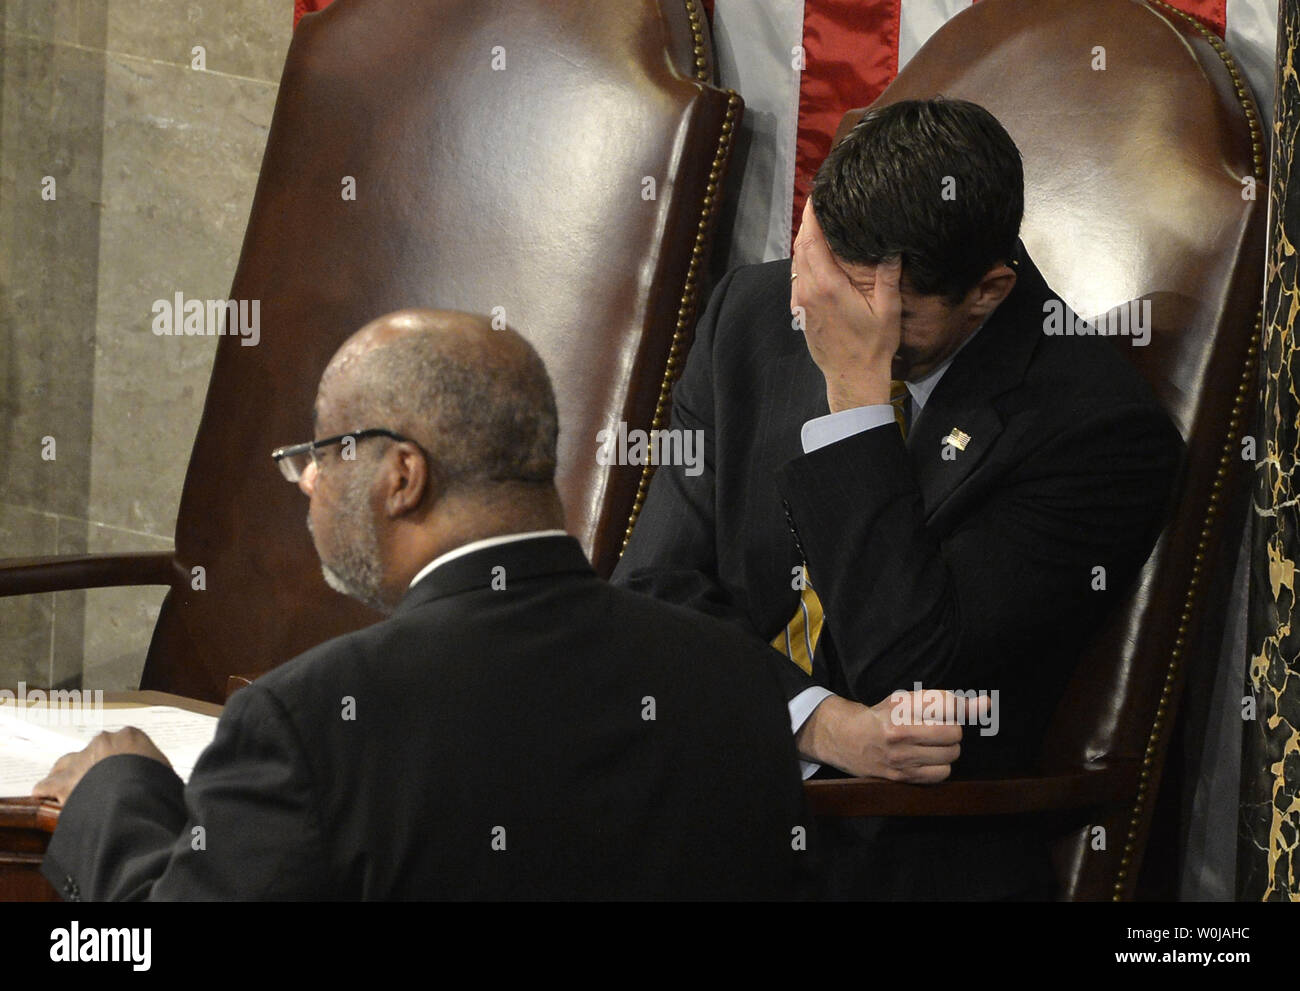 Speaker Paul Ryan (R-WI) reacts in laughter after Vice President Joe Biden said 'It's Over' in response to a floor protest during the procedure to count and validate the votes of the Electoral College on the floor of the House at the U.S. Capitol, January 6, 2017, in Washington, DC. The procedure, established by the Constitution, finalized Donald J. Trump and Mike Pence as the president and vice president.                 Photo by Mike Theiler/UPI - Stock Image